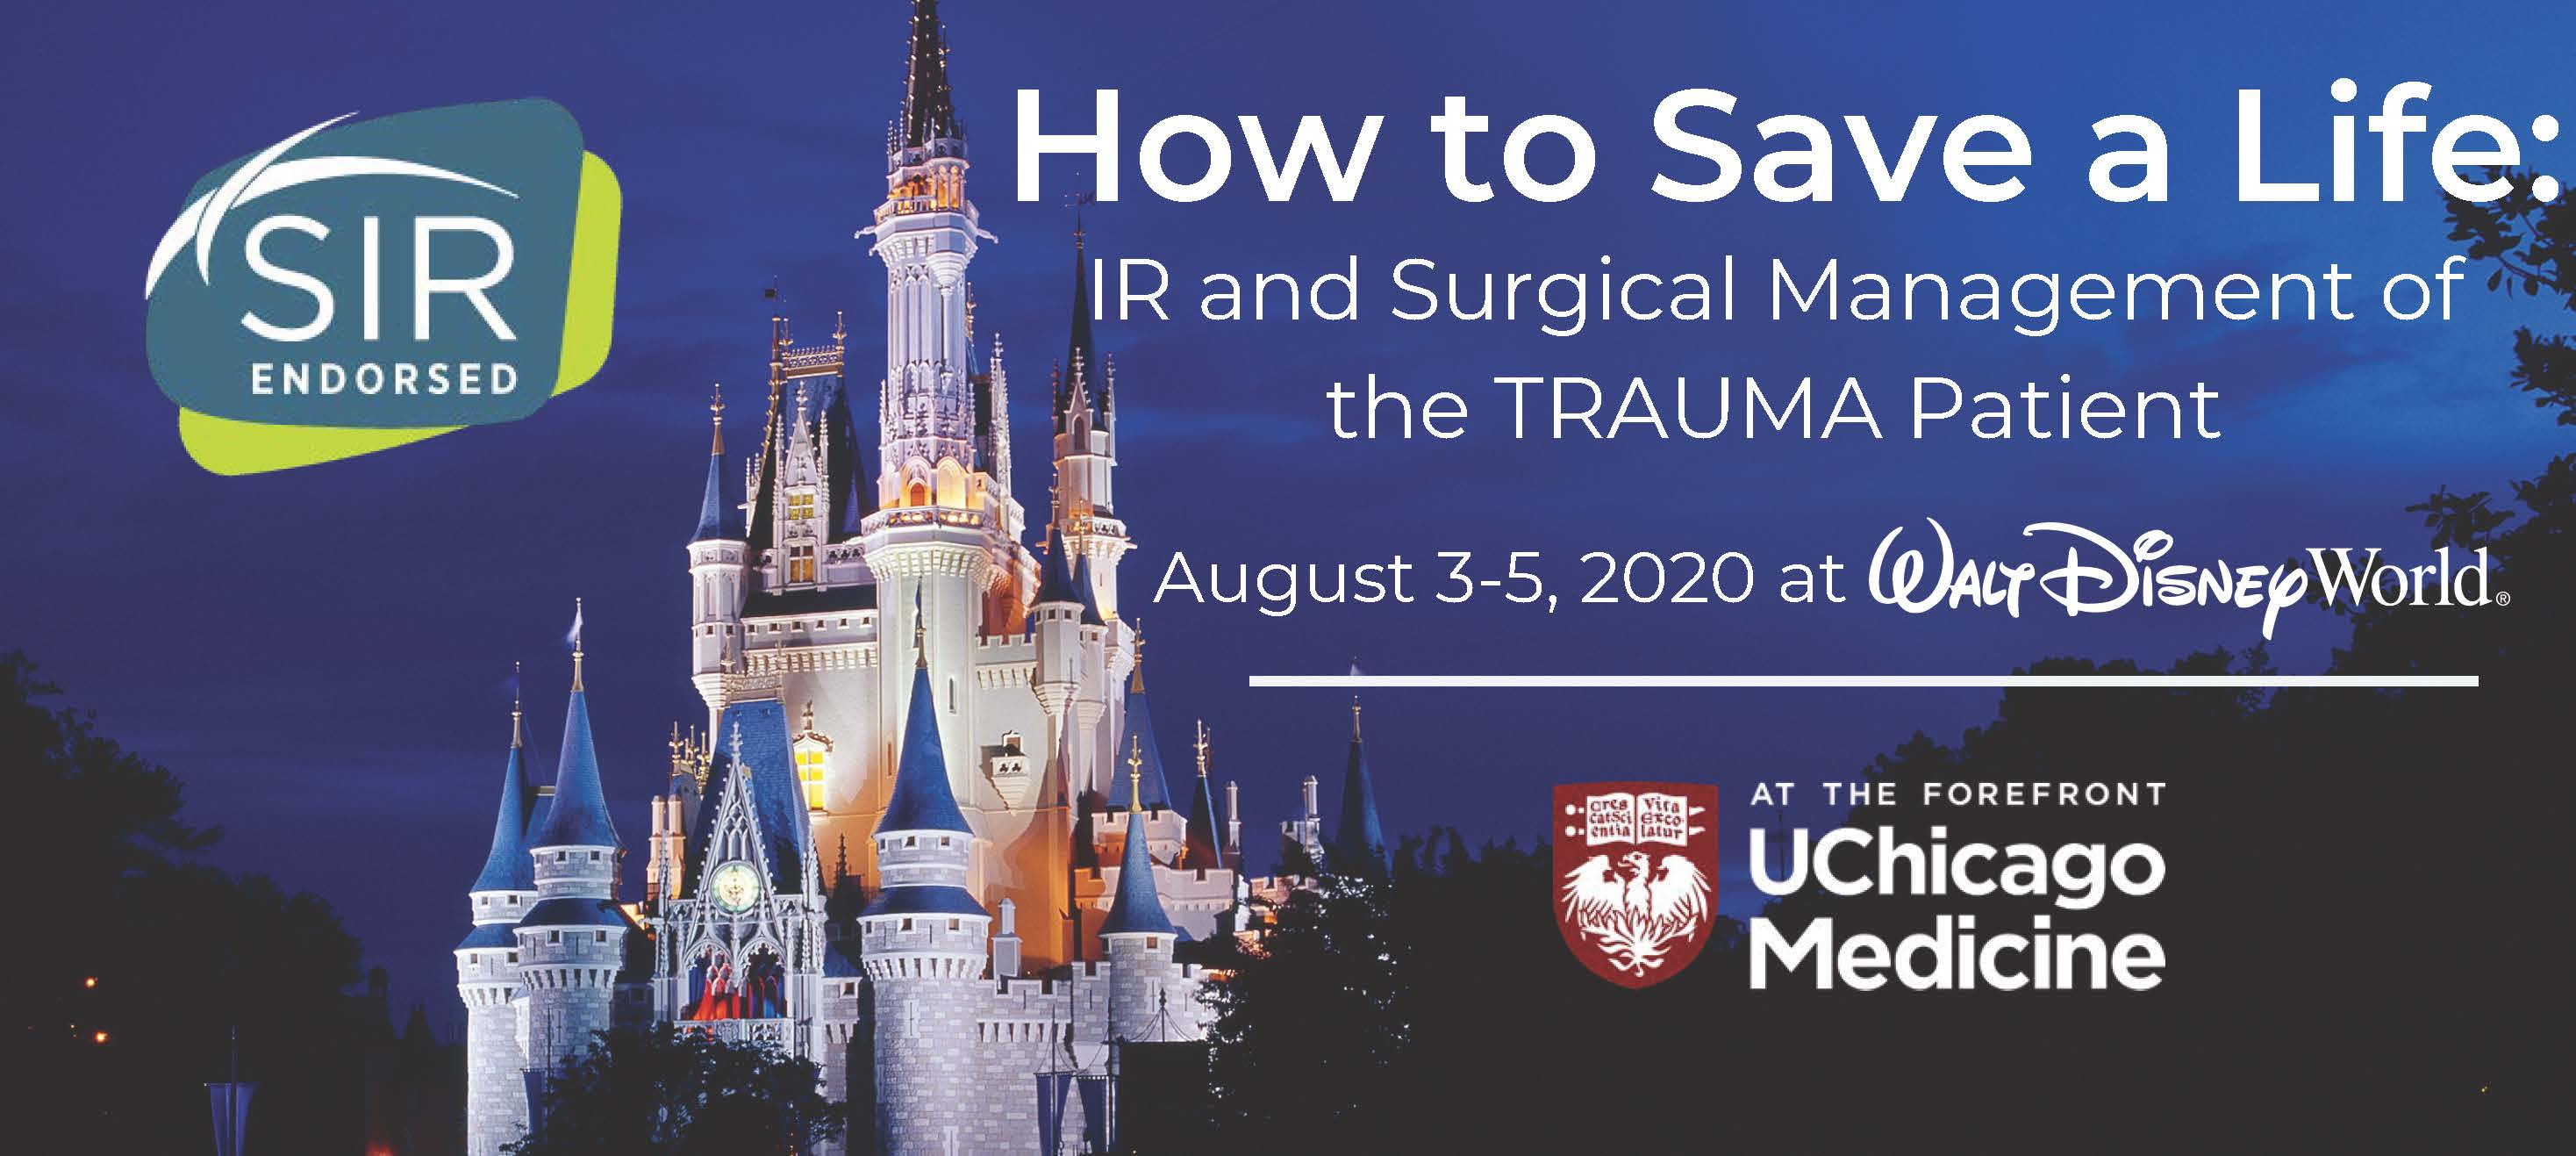 How to Save a Life: IR and Surgical Management of the Trauma Patient